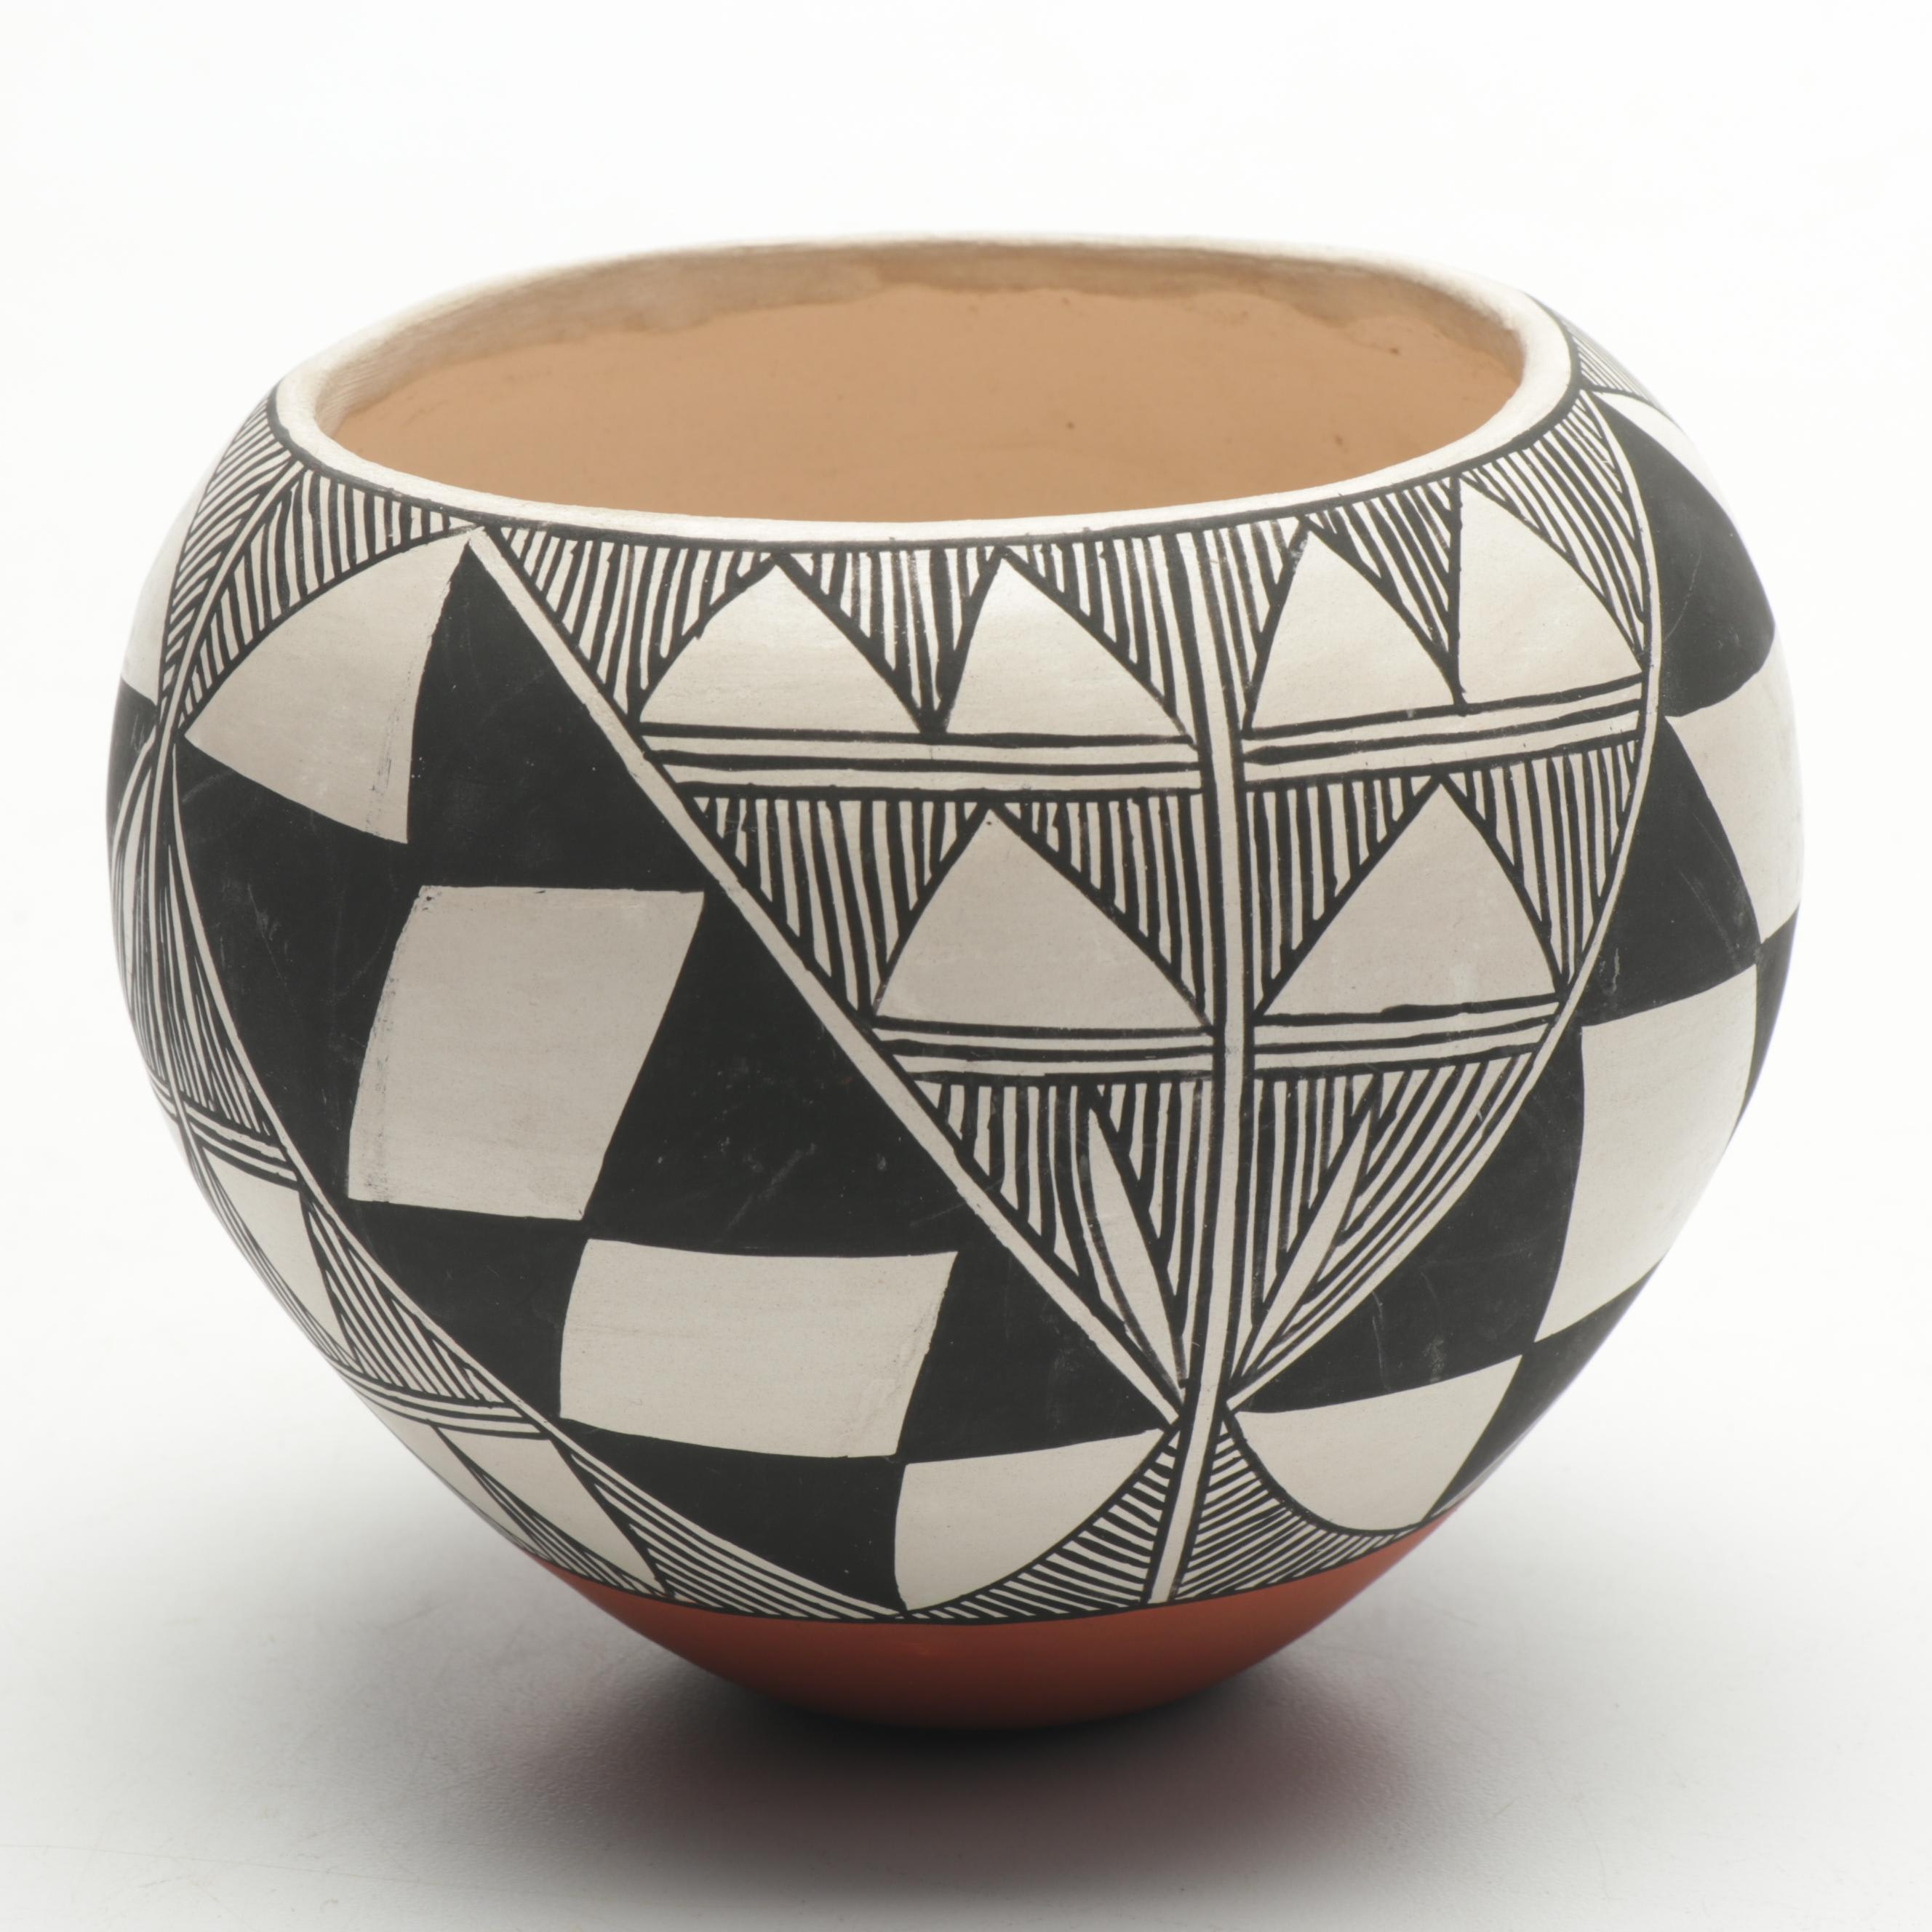 A. Ramirez Acoma Hand-Painted Earthenware Vase